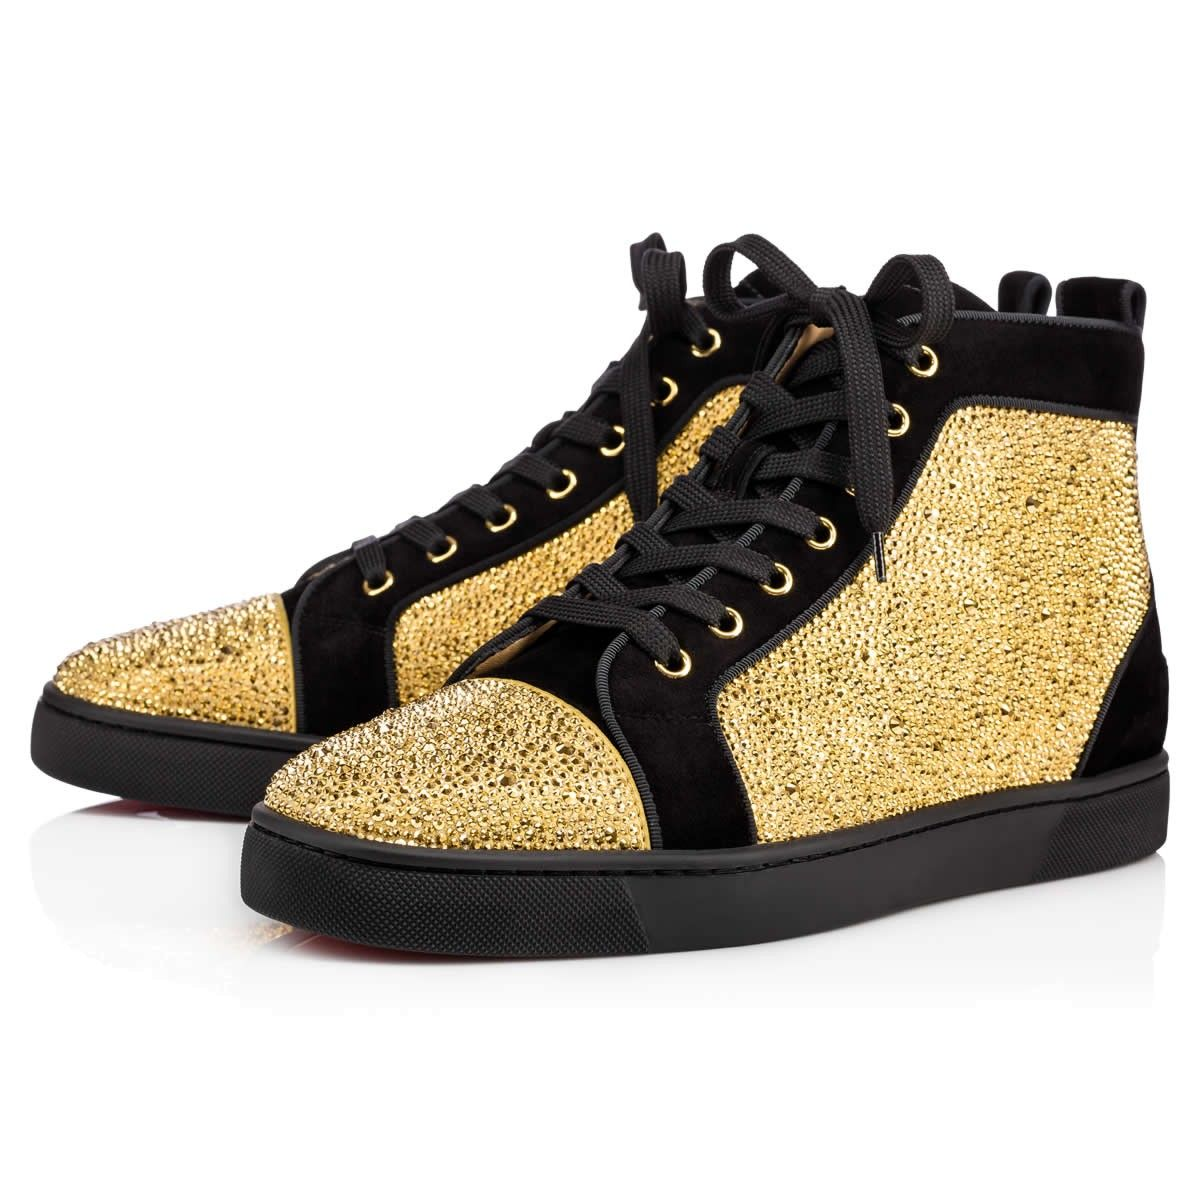 36f75f6bd5ea CHRISTIAN LOUBOUTIN Louis Strass Men S Flat Version Black Gold.   christianlouboutin  shoes